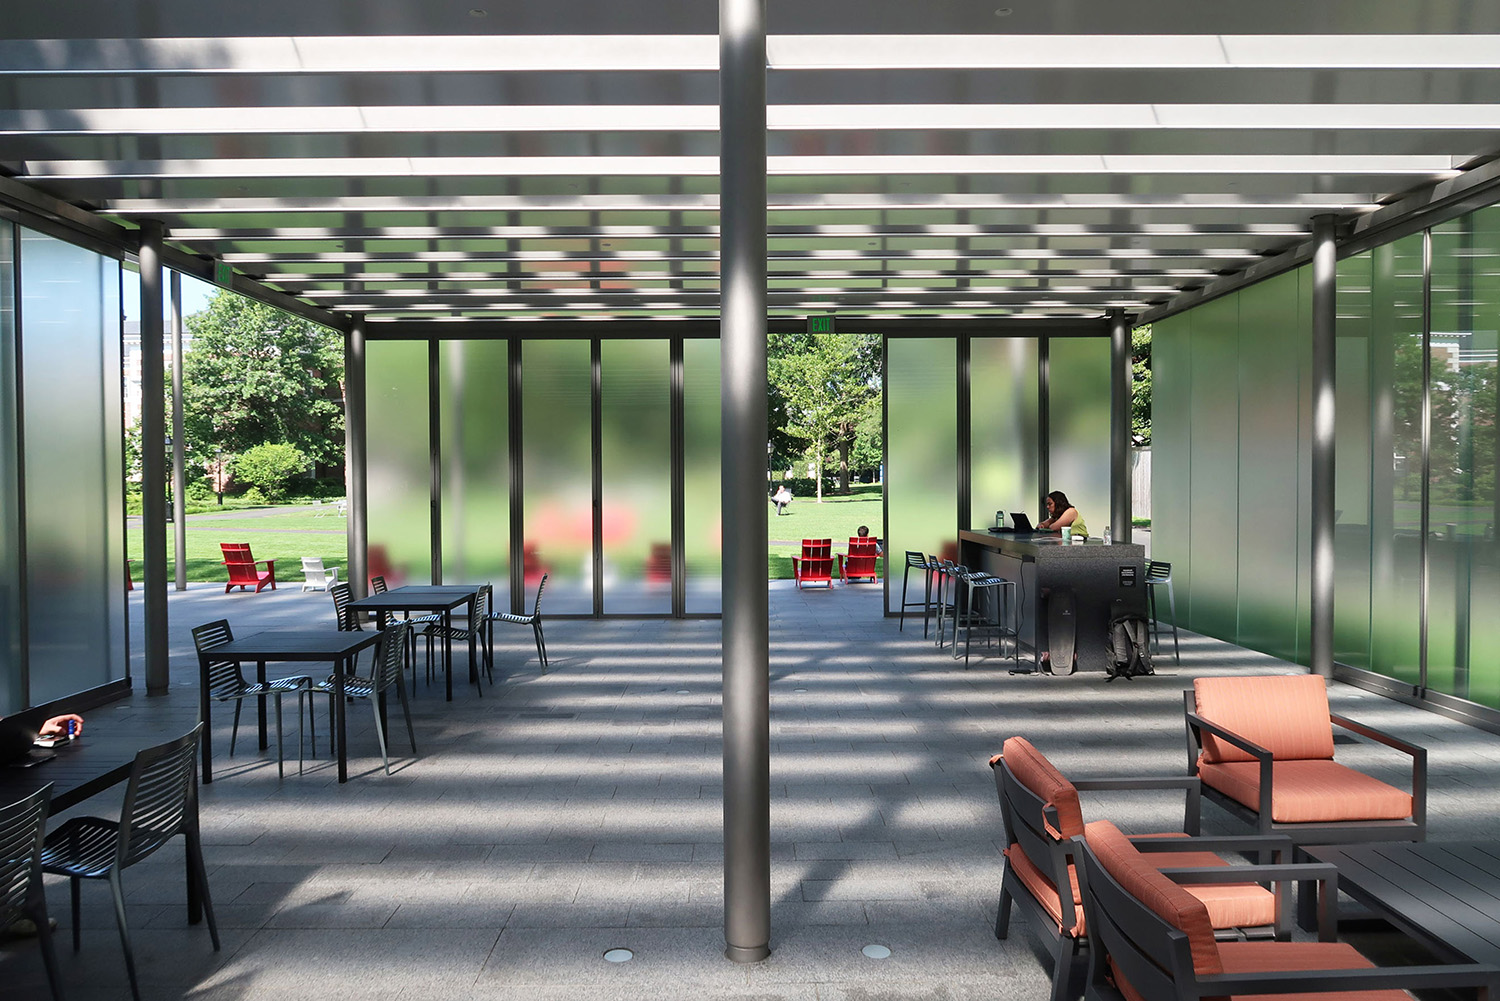 The pavilion canopy and partition walls are arranged to optimize comfort with the seasonal changes of wind and sun light in the commons site Richard Kress, courtesy of James Carpenter Design Associates